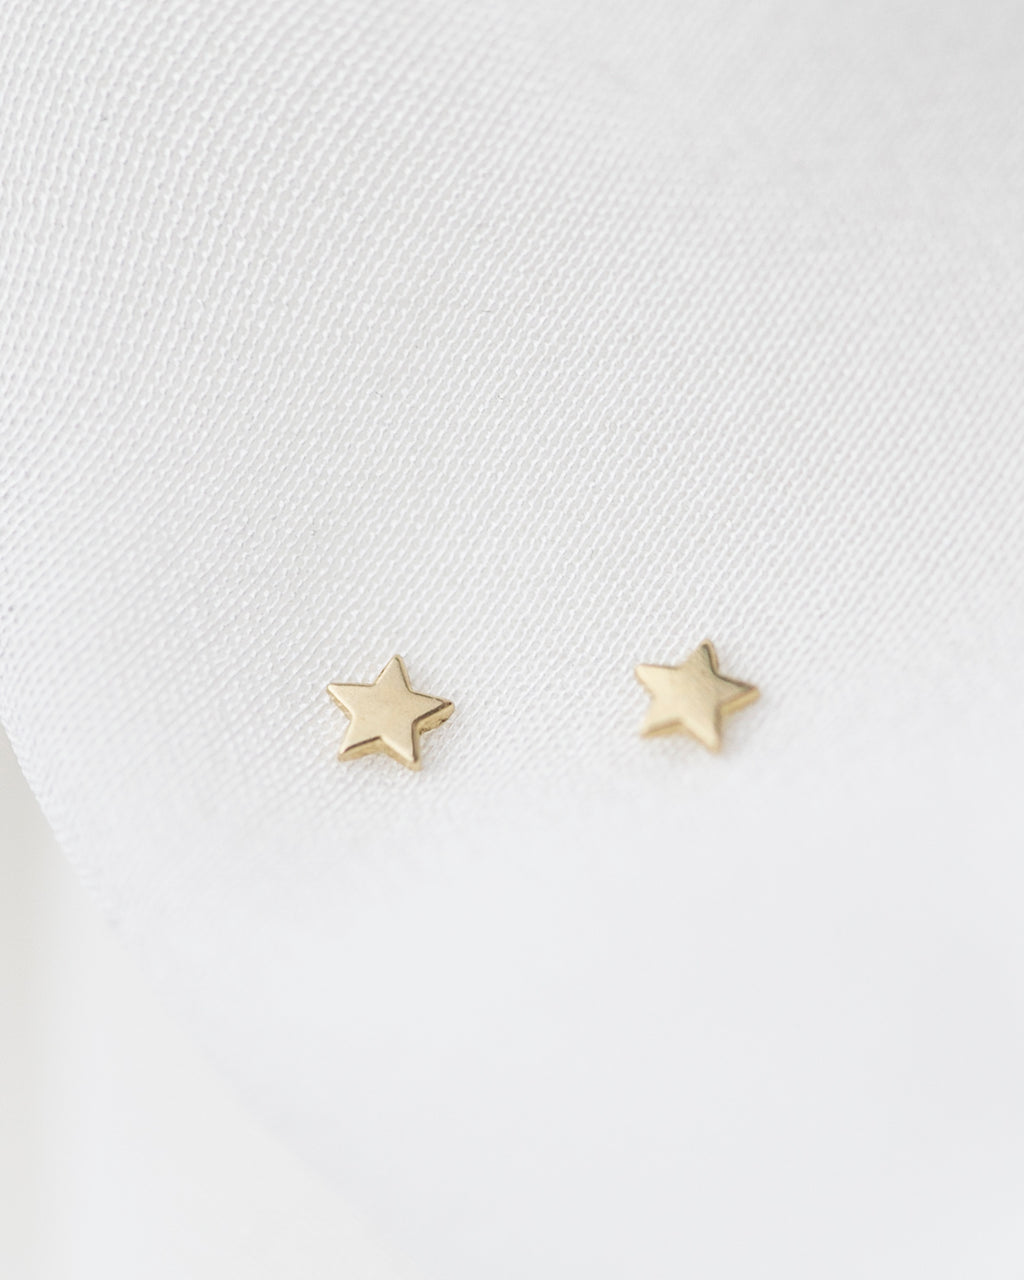 14K Mini Star Stud Earrings